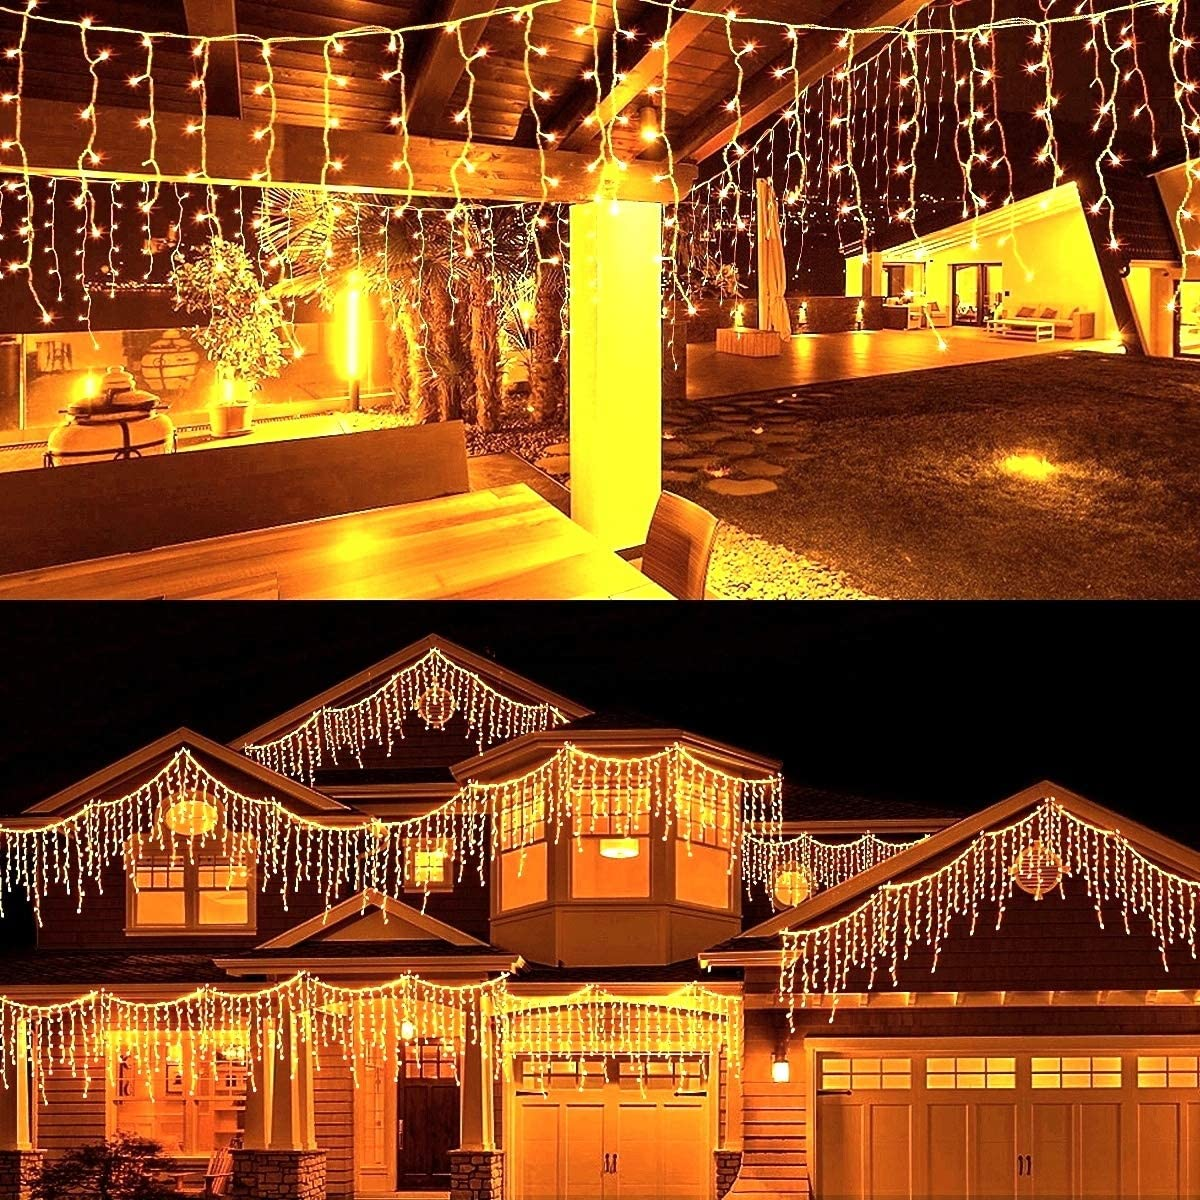 MAOYUE 29 ft 450 LED Christmas Decorations Outdoor Christmas Decorations Icicle Lights with Timer Christmas Lights Waterproof Cascading Lights for Outside Christmas Decor, Porch, Yard, Warm White